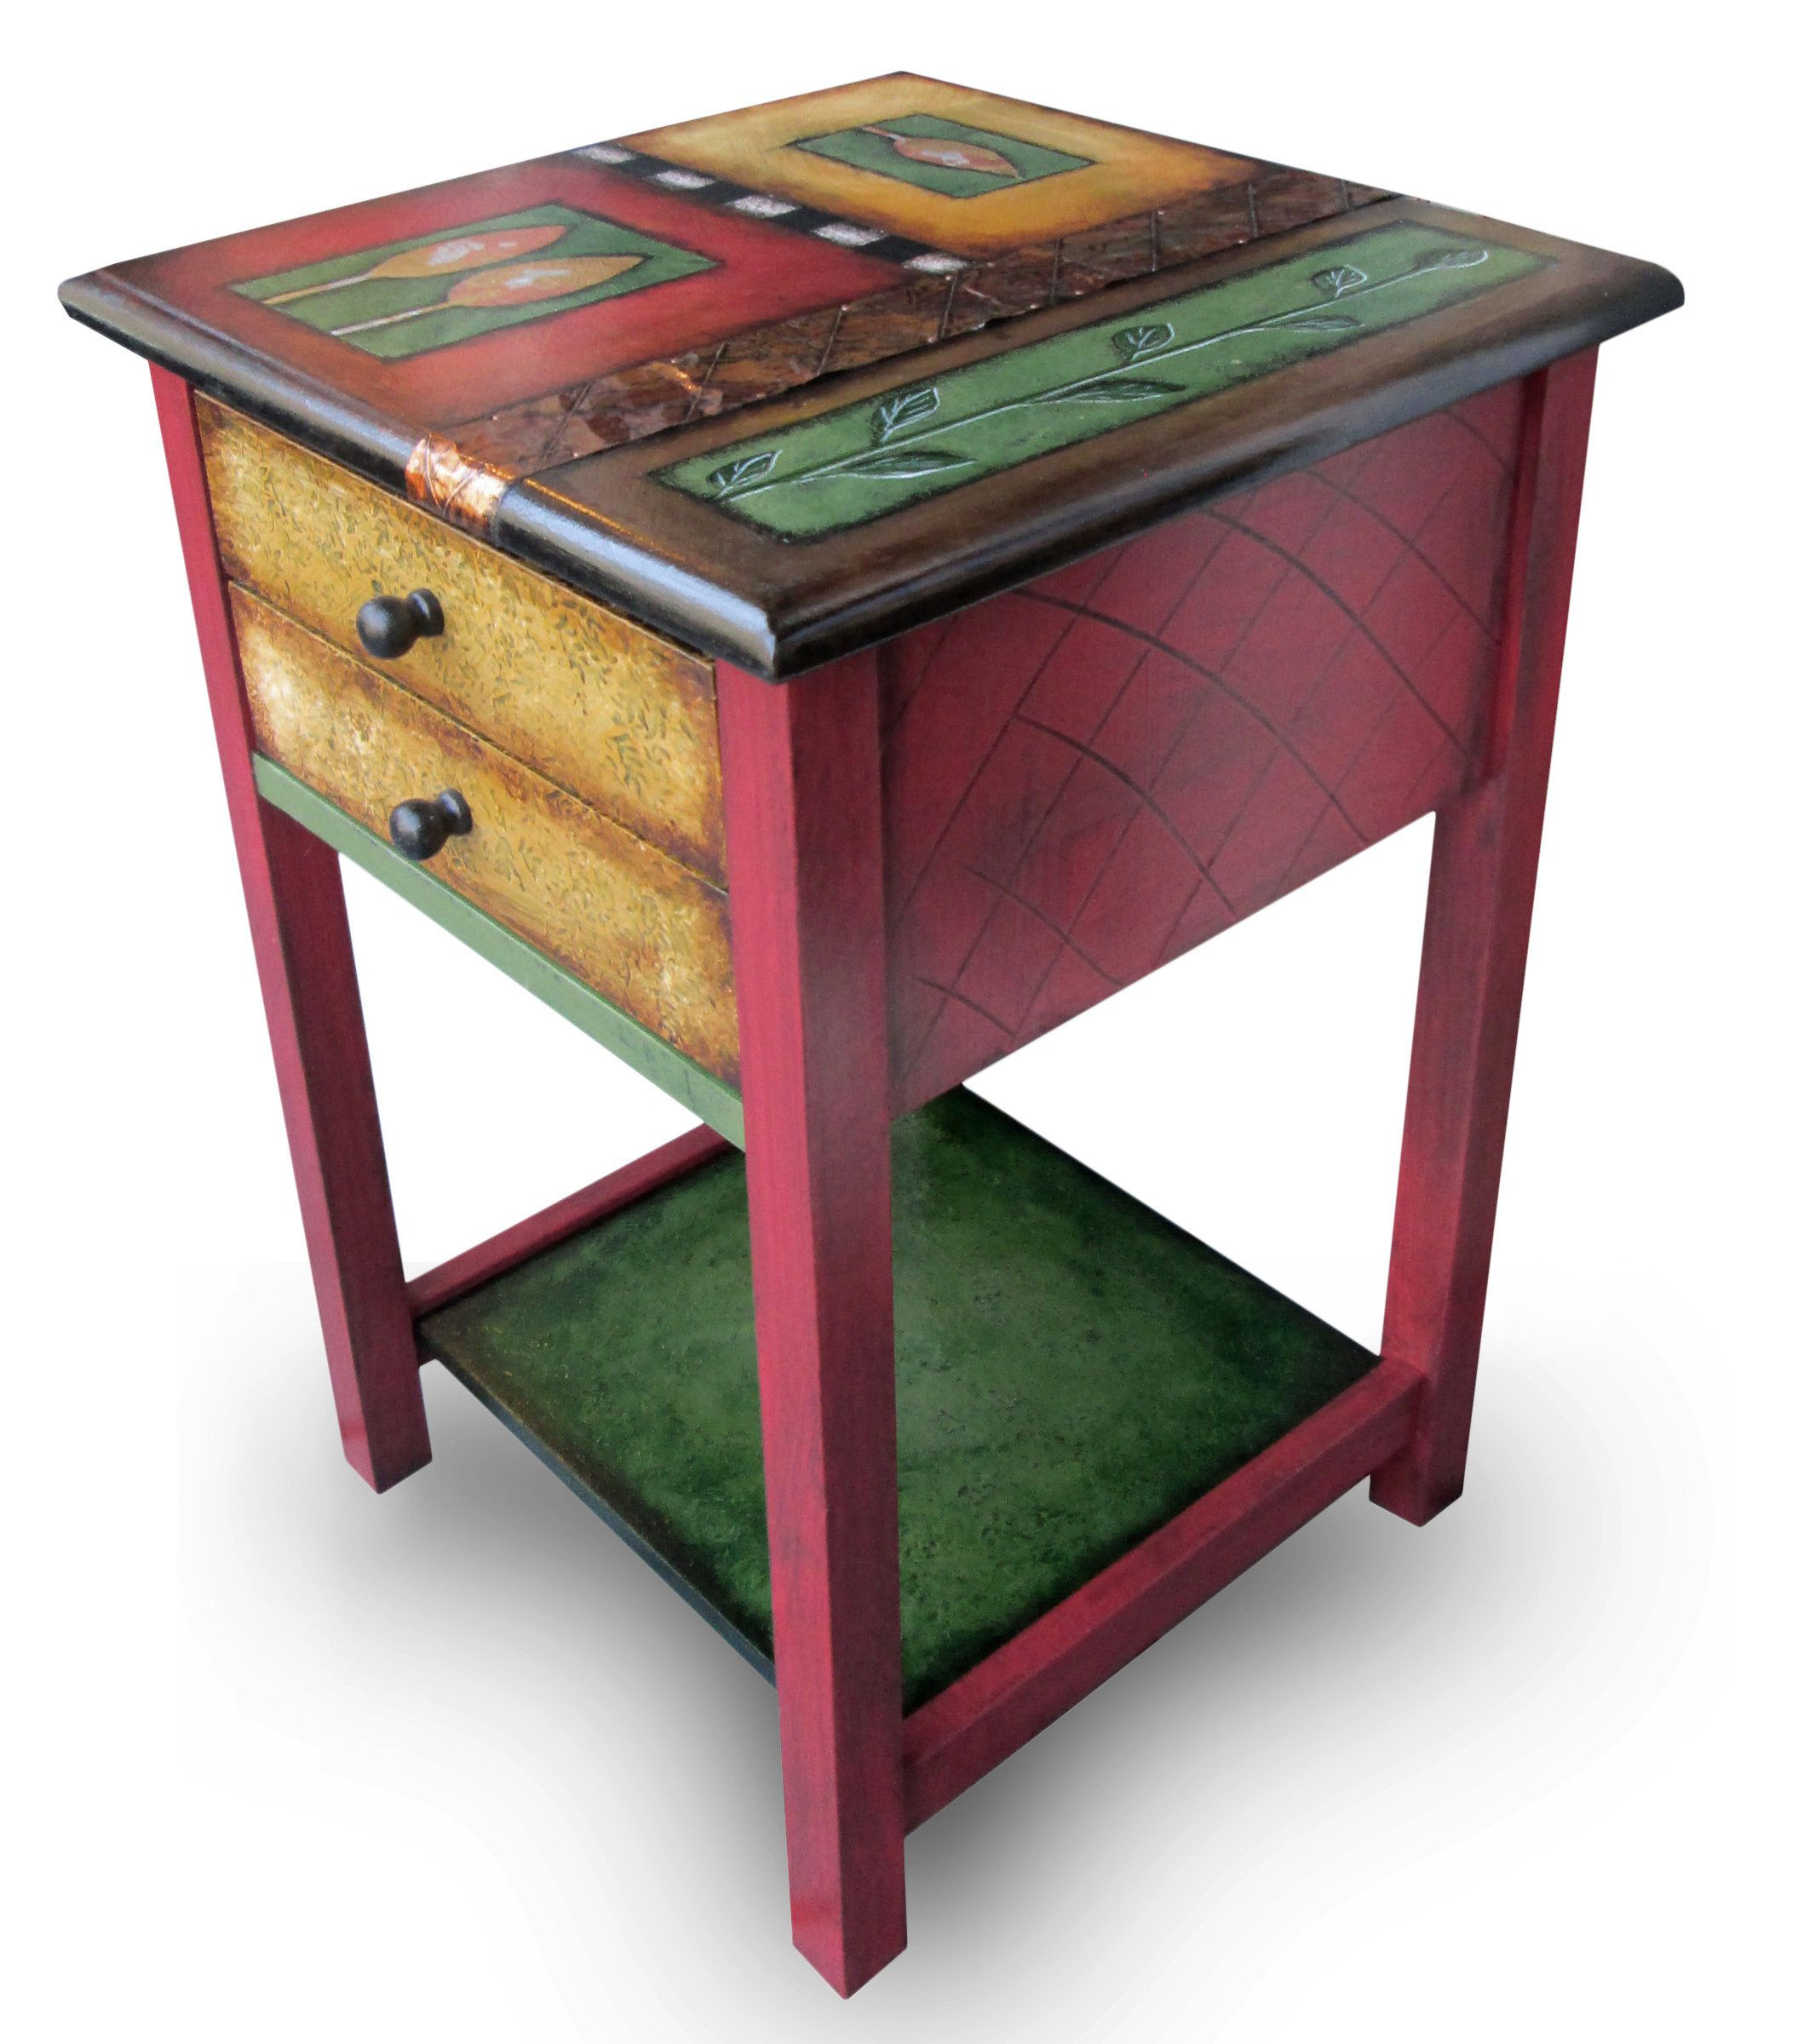 All That Glitters End Table by Wendy Grossman. Grossman hand paints every surface of this wood table in colorful, original designs with embossed copper accents. She uses only real gold, copper, and silver leaf for accents. Features two drawers and a lower shelf.